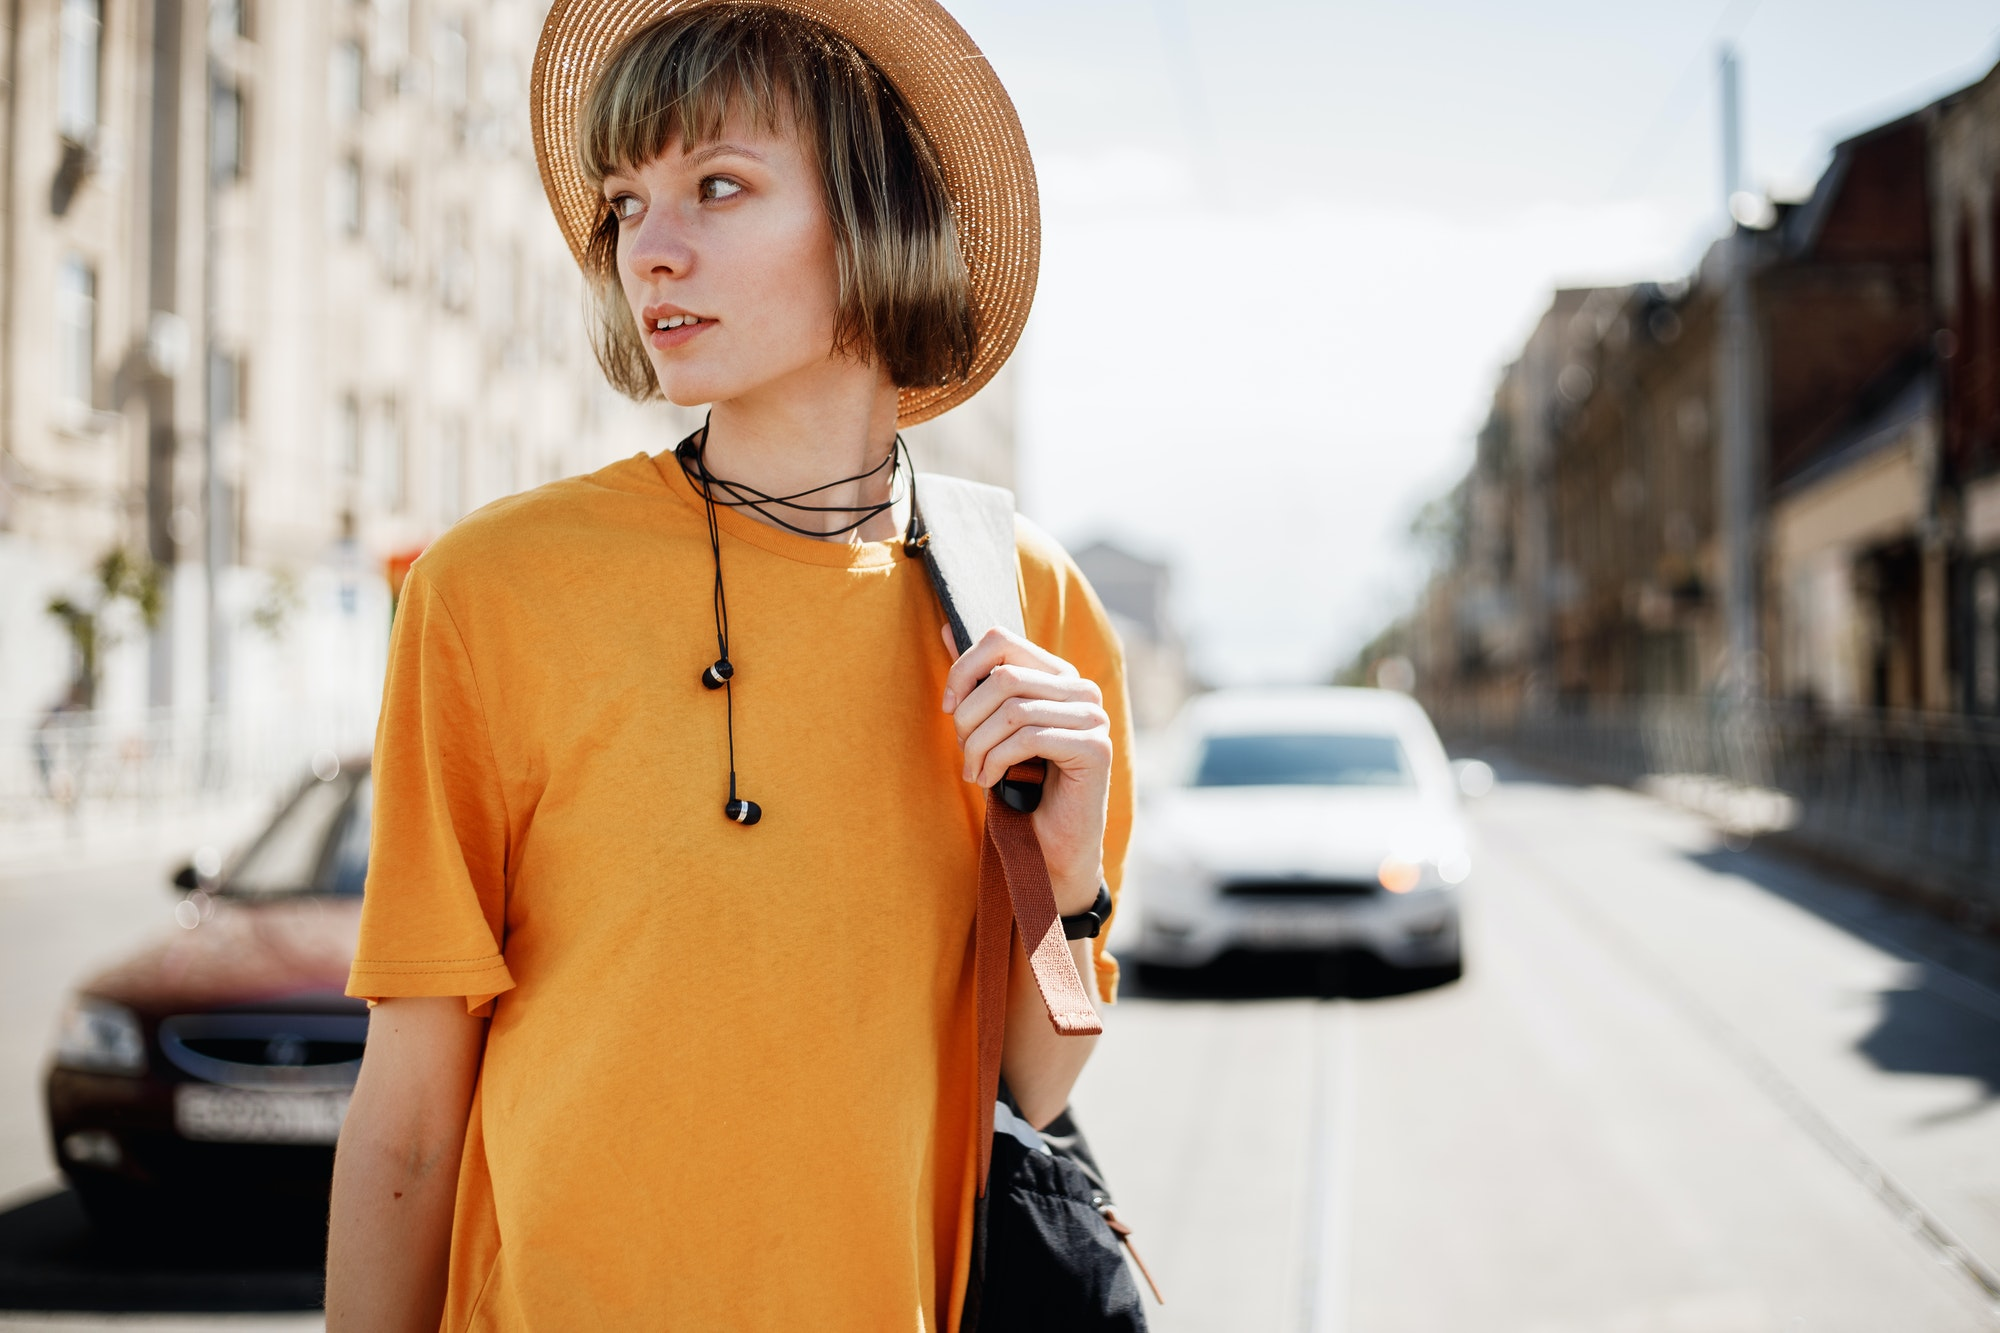 Young girl with headphones in a yellow T-shirt and a straw hat walks with a backpack along a city